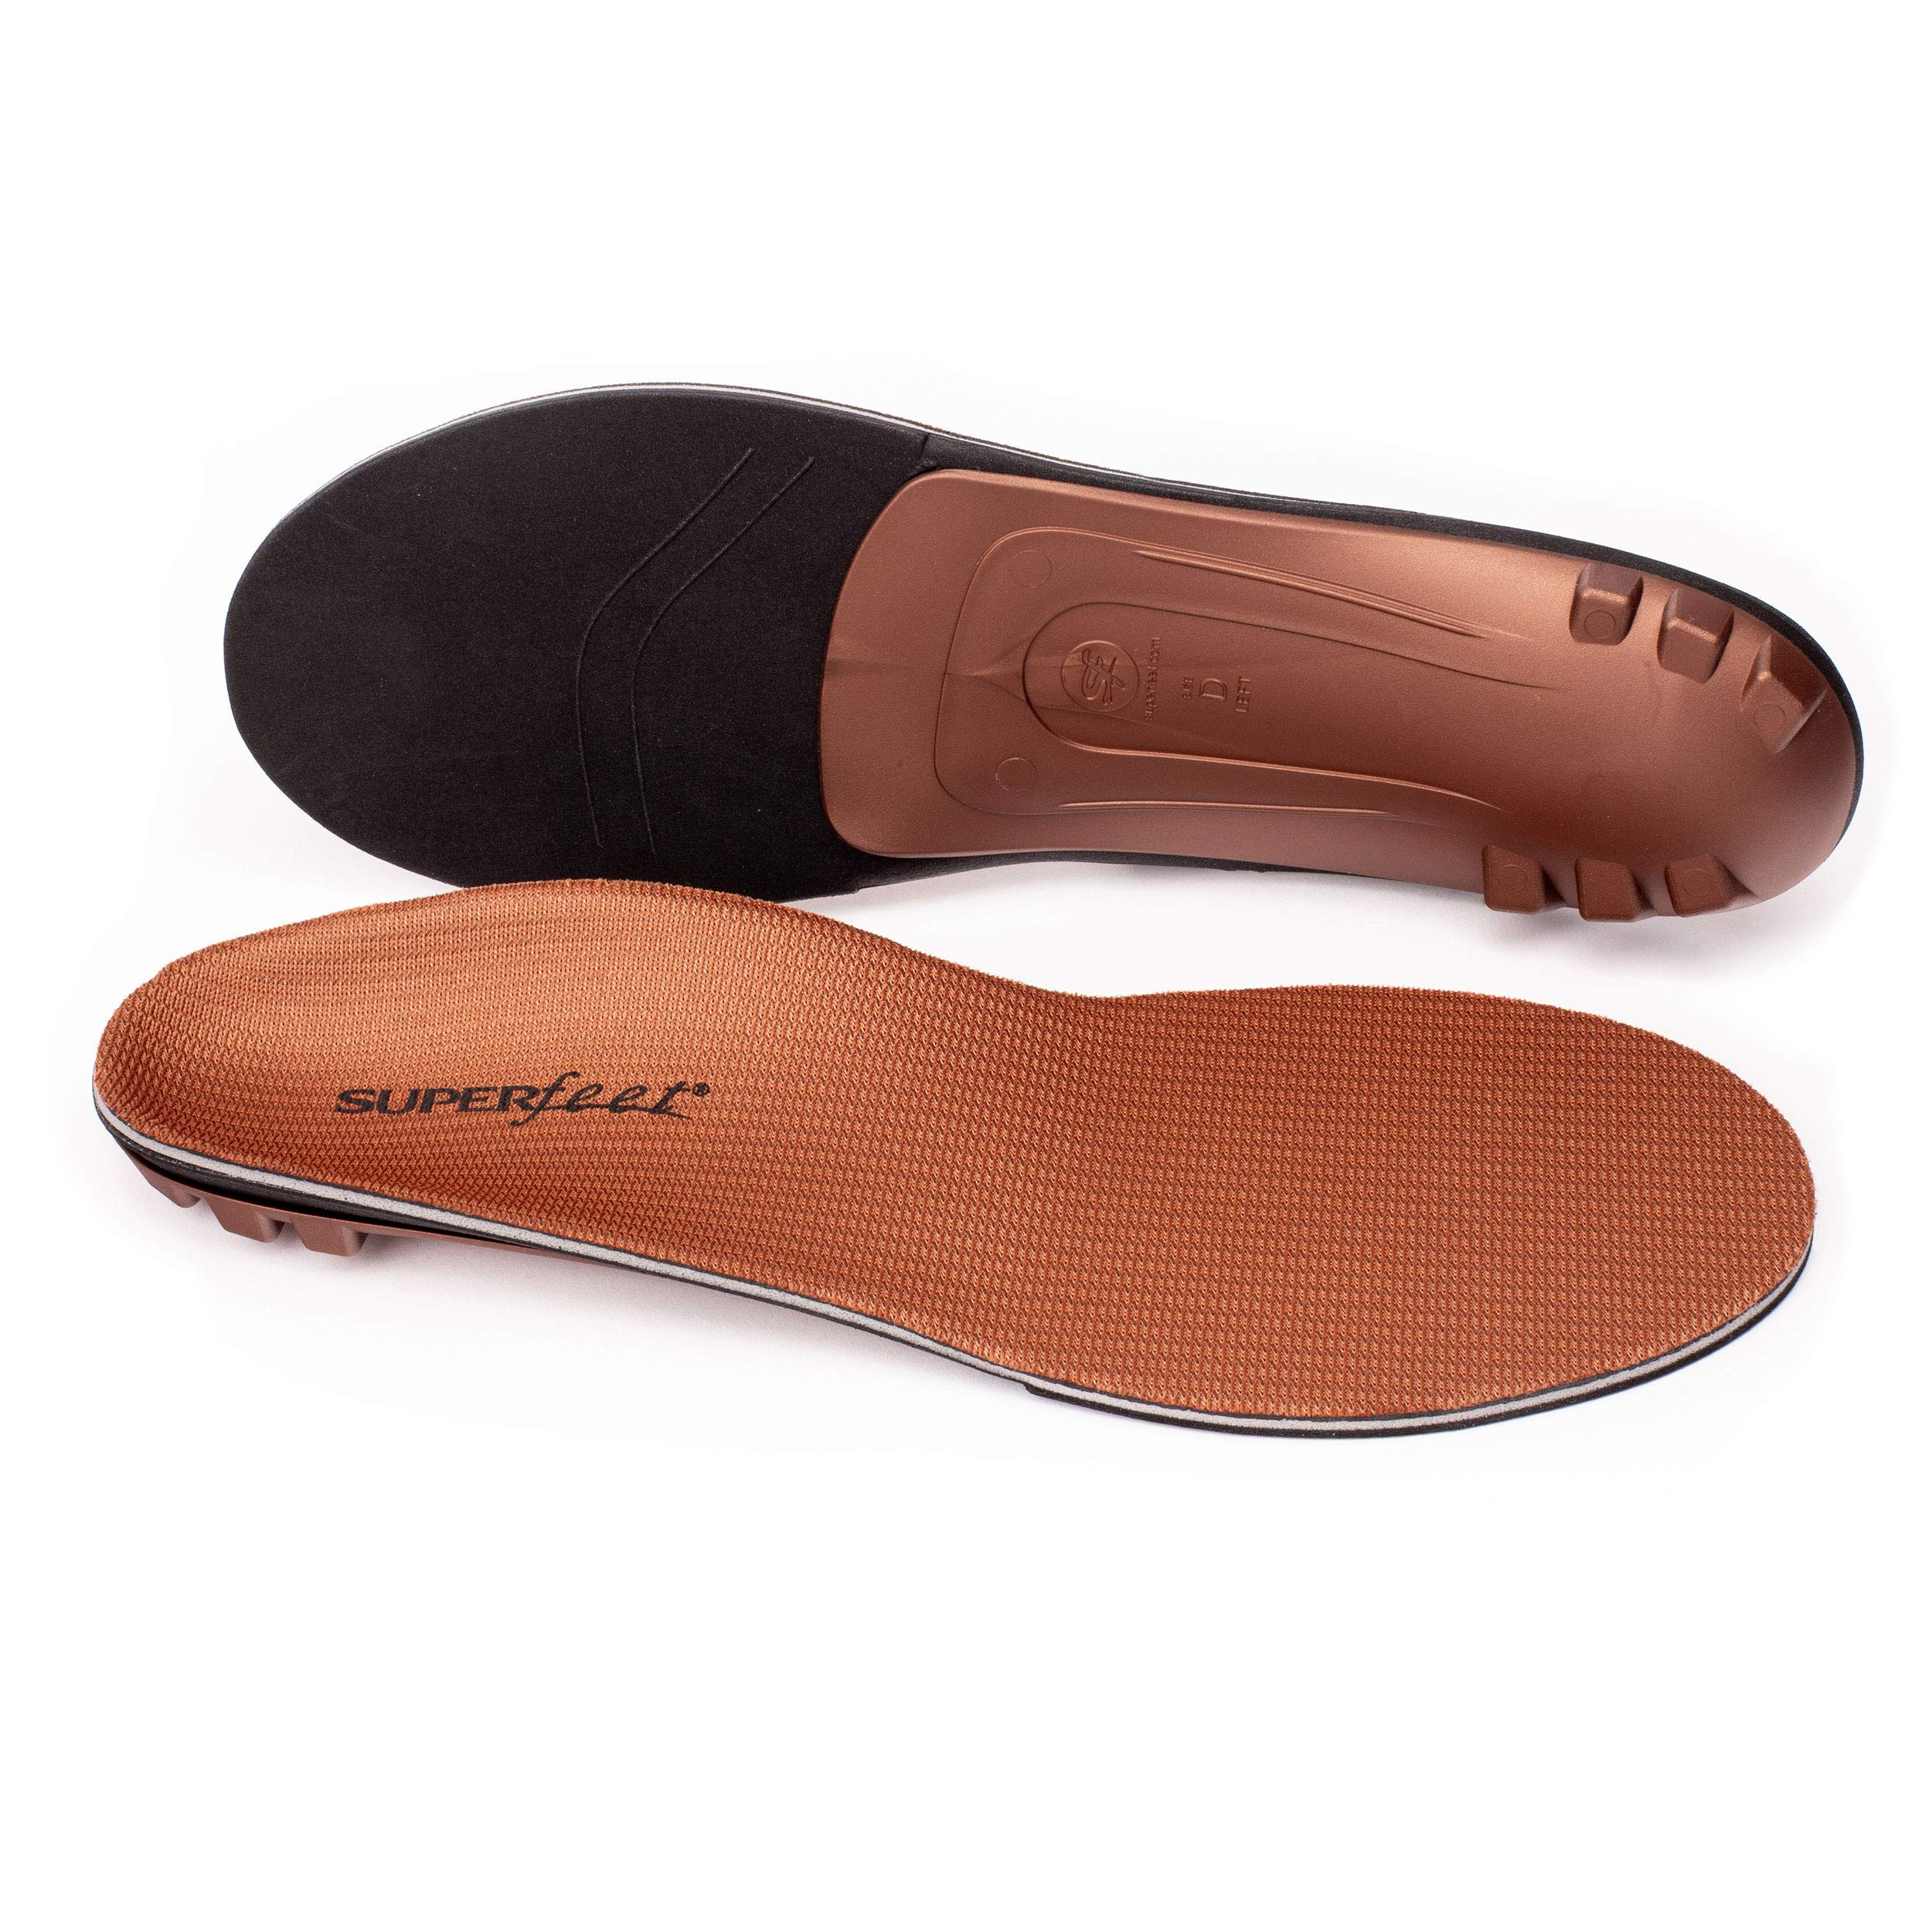 Superfeet COPPER, Memory Foam Comfort plus Support Anti-fatigue Replacement Insoles, Unisex, Copper, Large/E: 10.5-12 Wmns/9.5-11 Mens by Superfeet